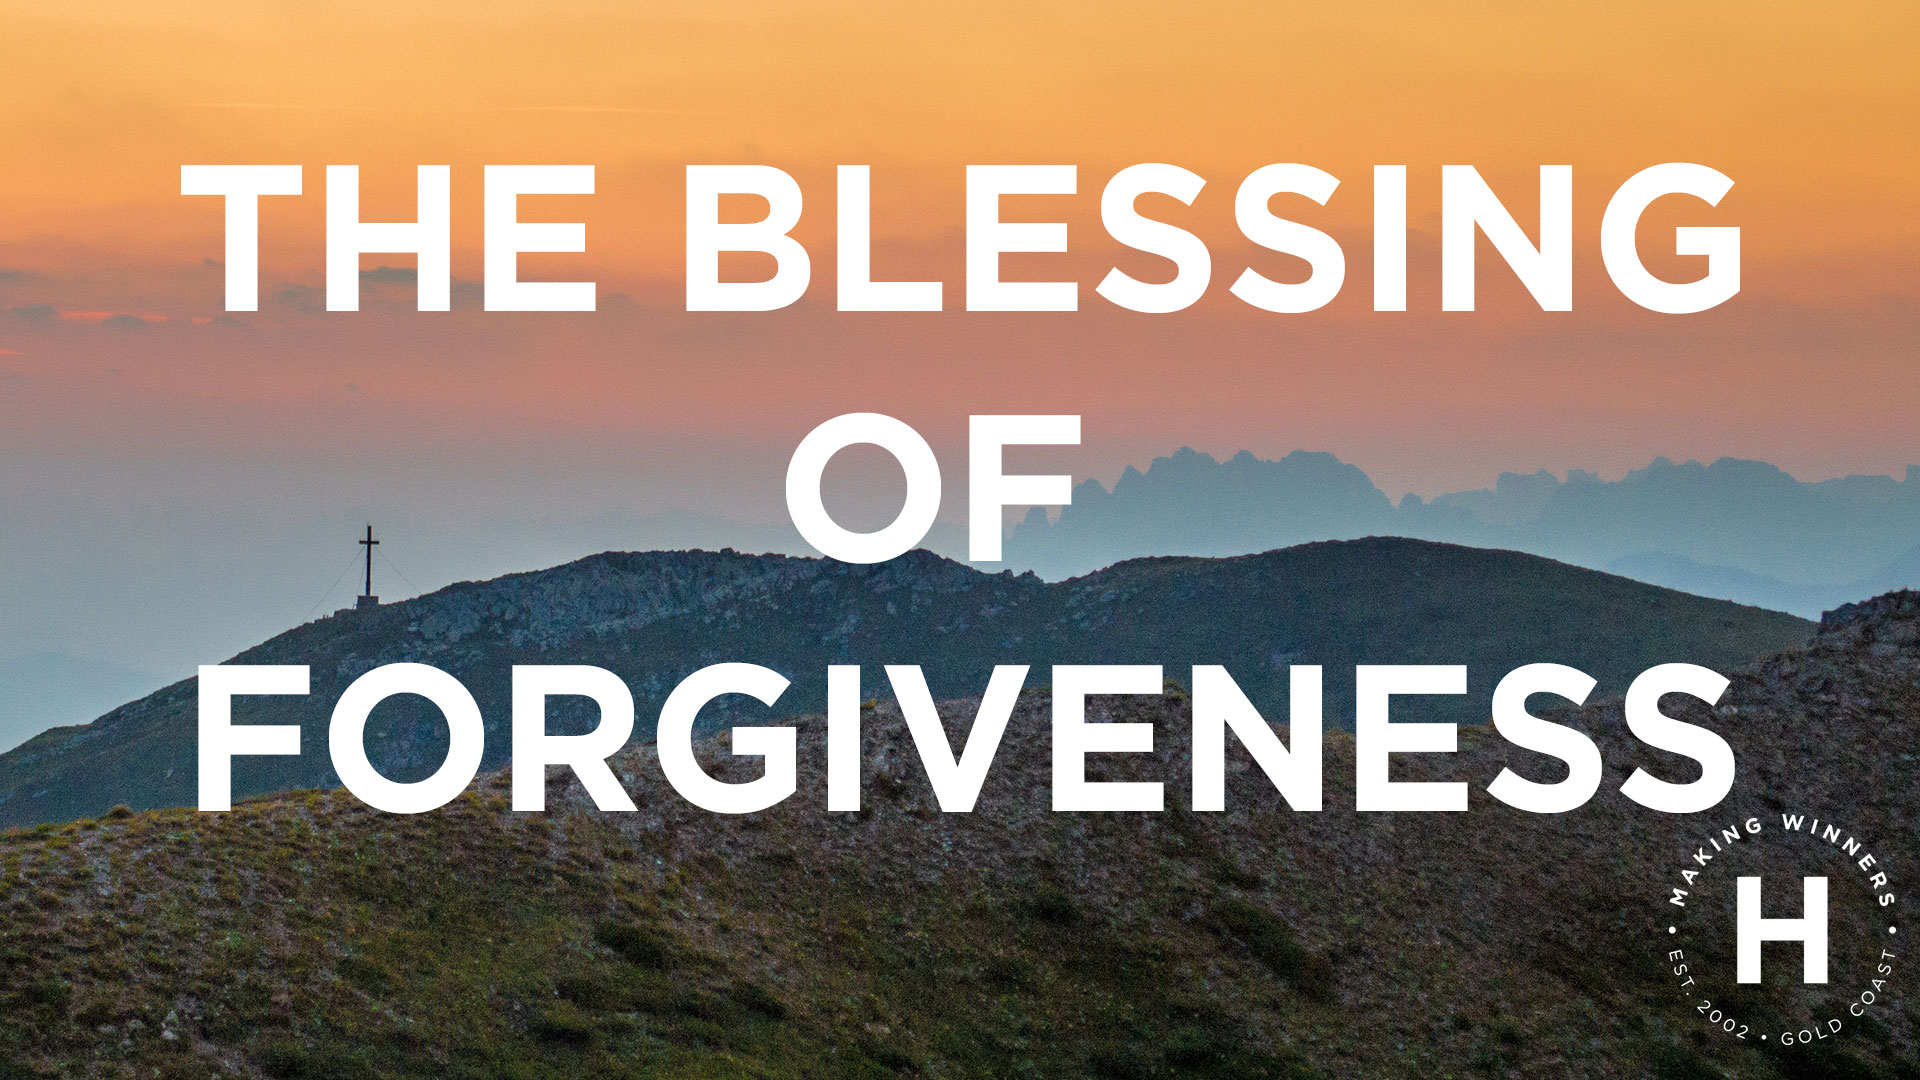 The Blessing of Forgiveness